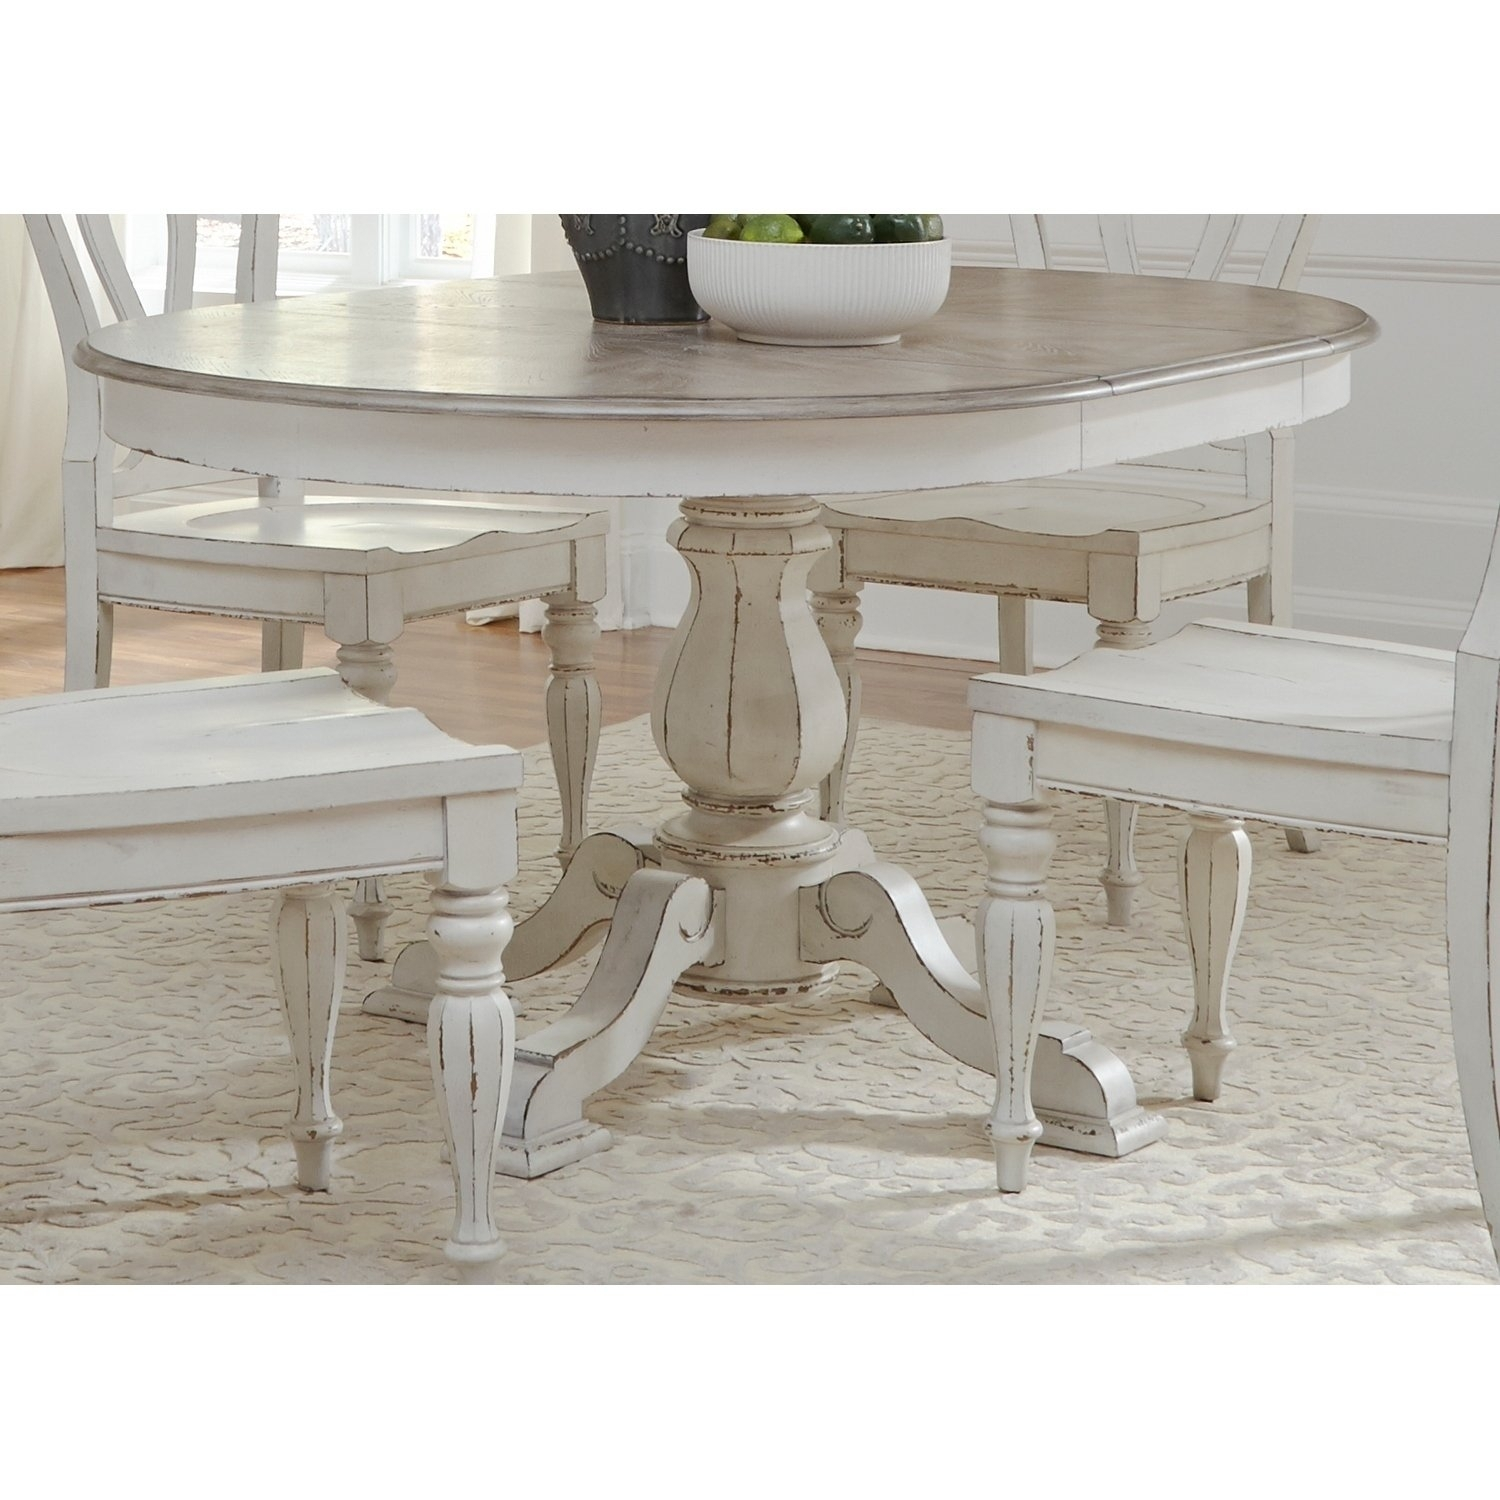 Shop Magnolia Manor Antique White Pedestal Table – Antique White Inside Latest Magnolia Home English Country Oval Dining Tables (Image 19 of 20)